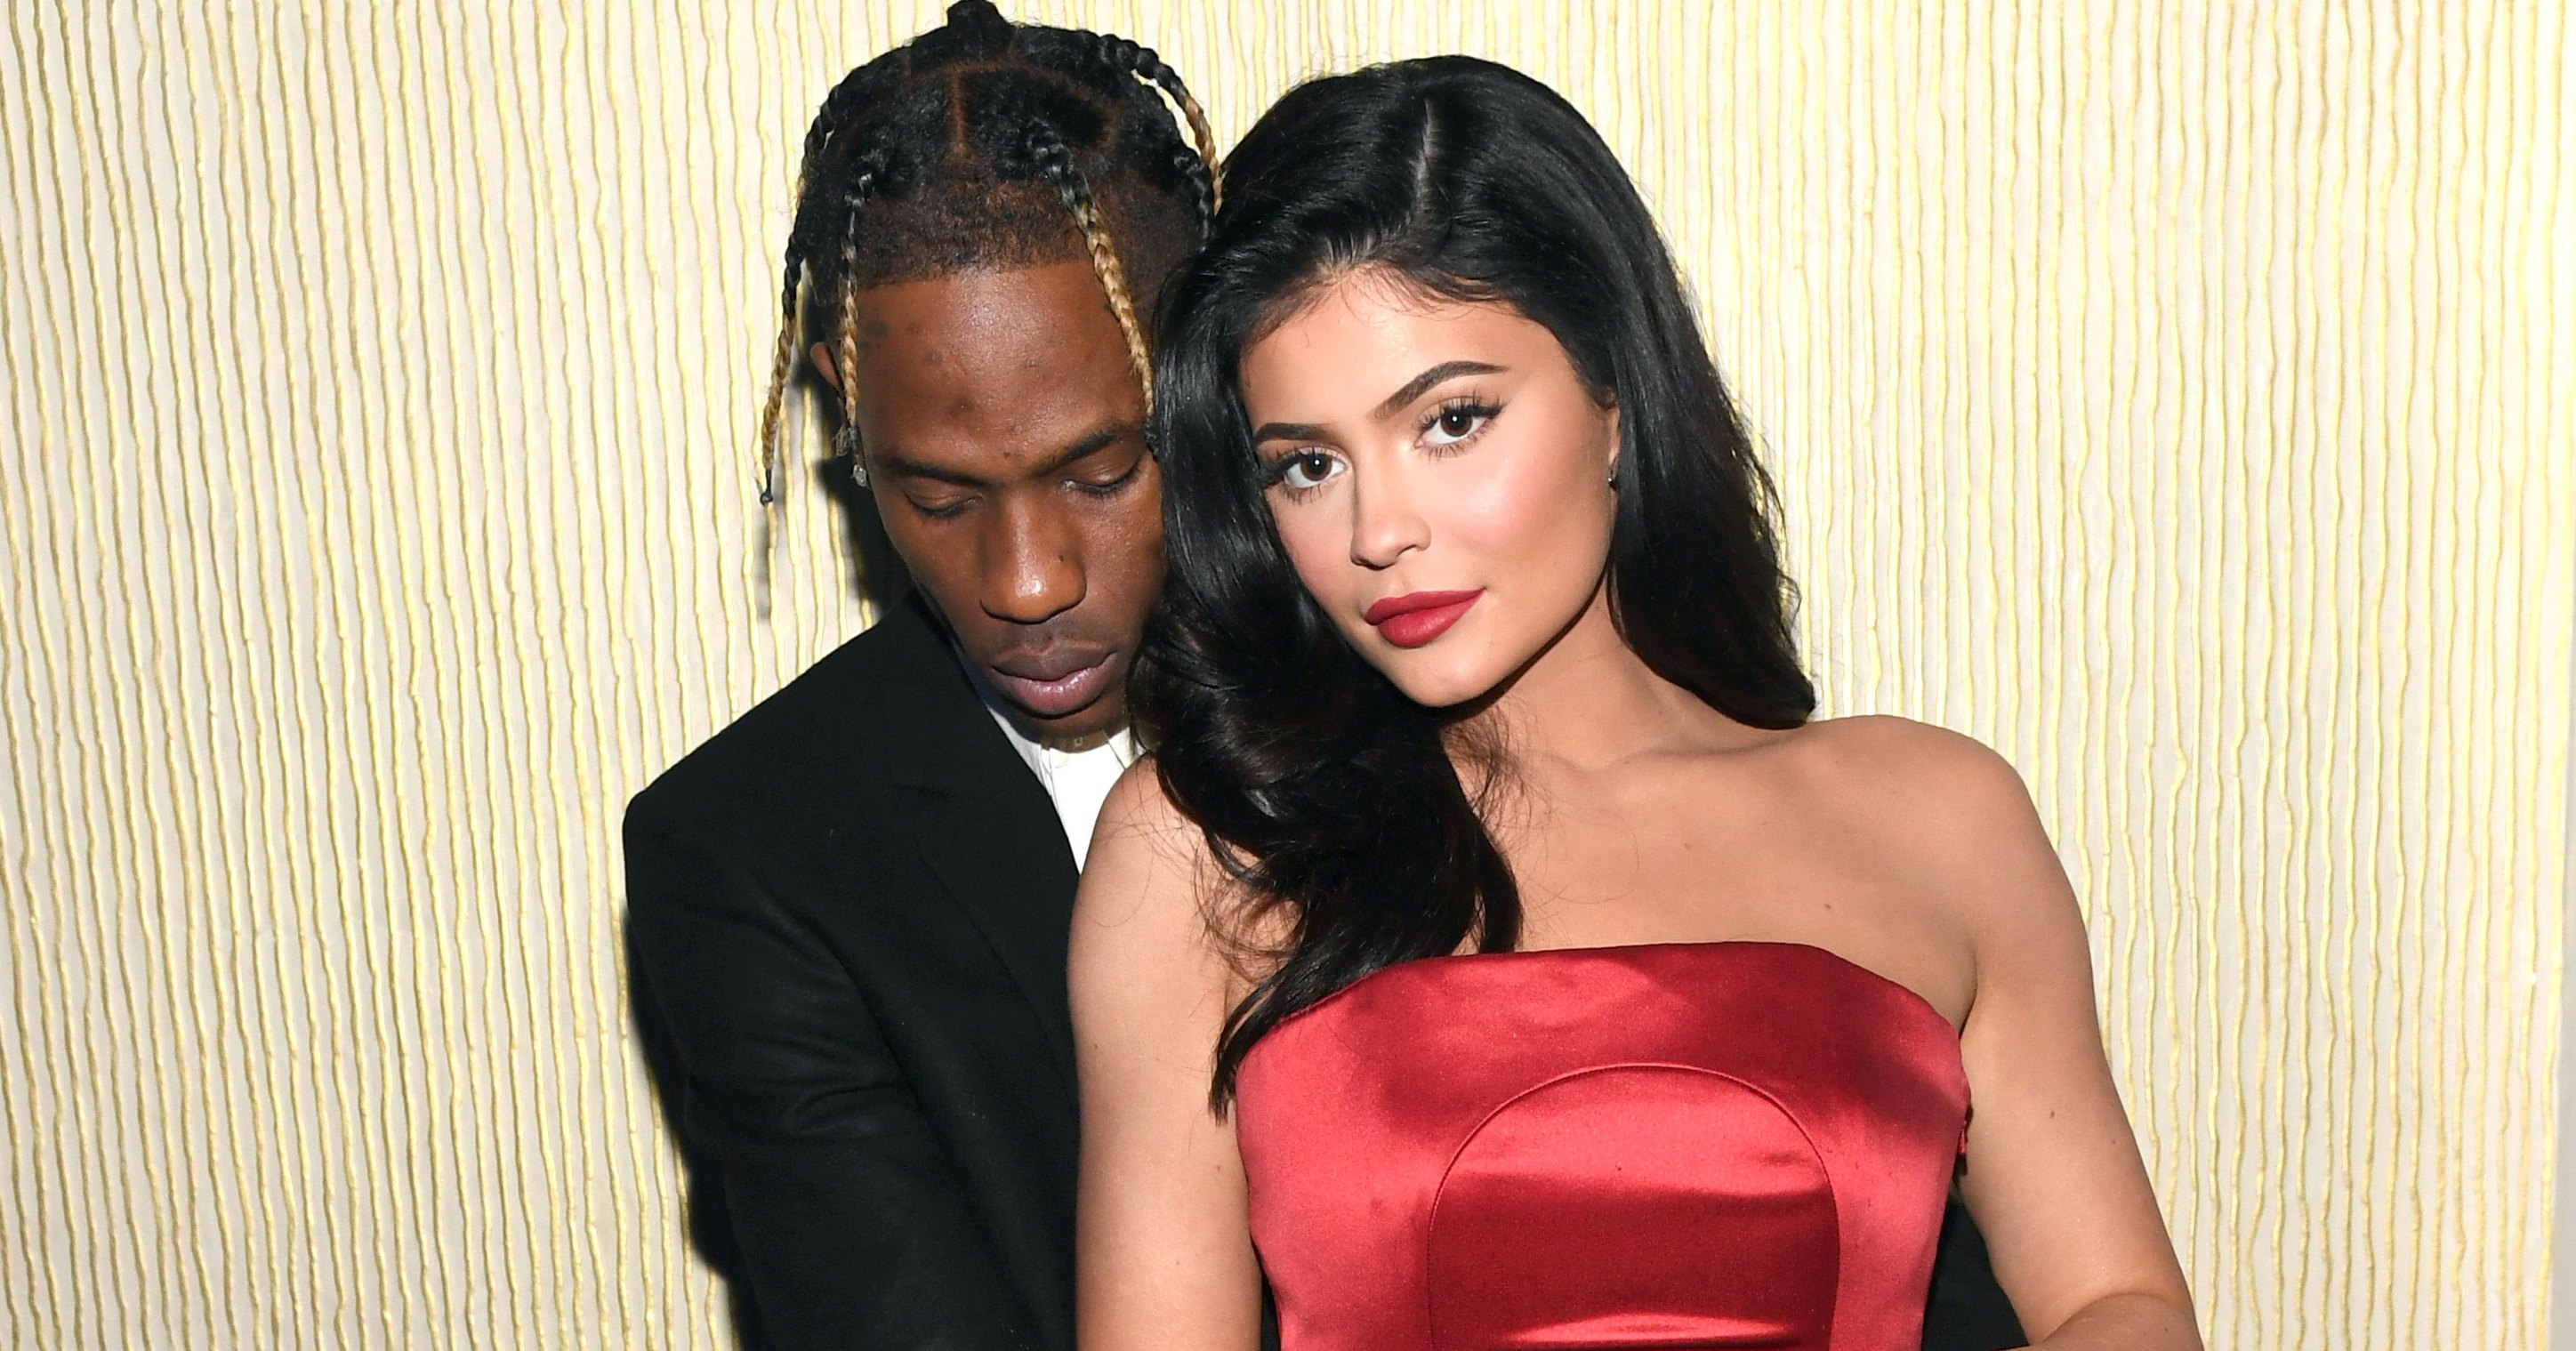 Kylie and Travis! Beyonce and Jay-Z! Inside the Pre-Grammy Parties: Photos